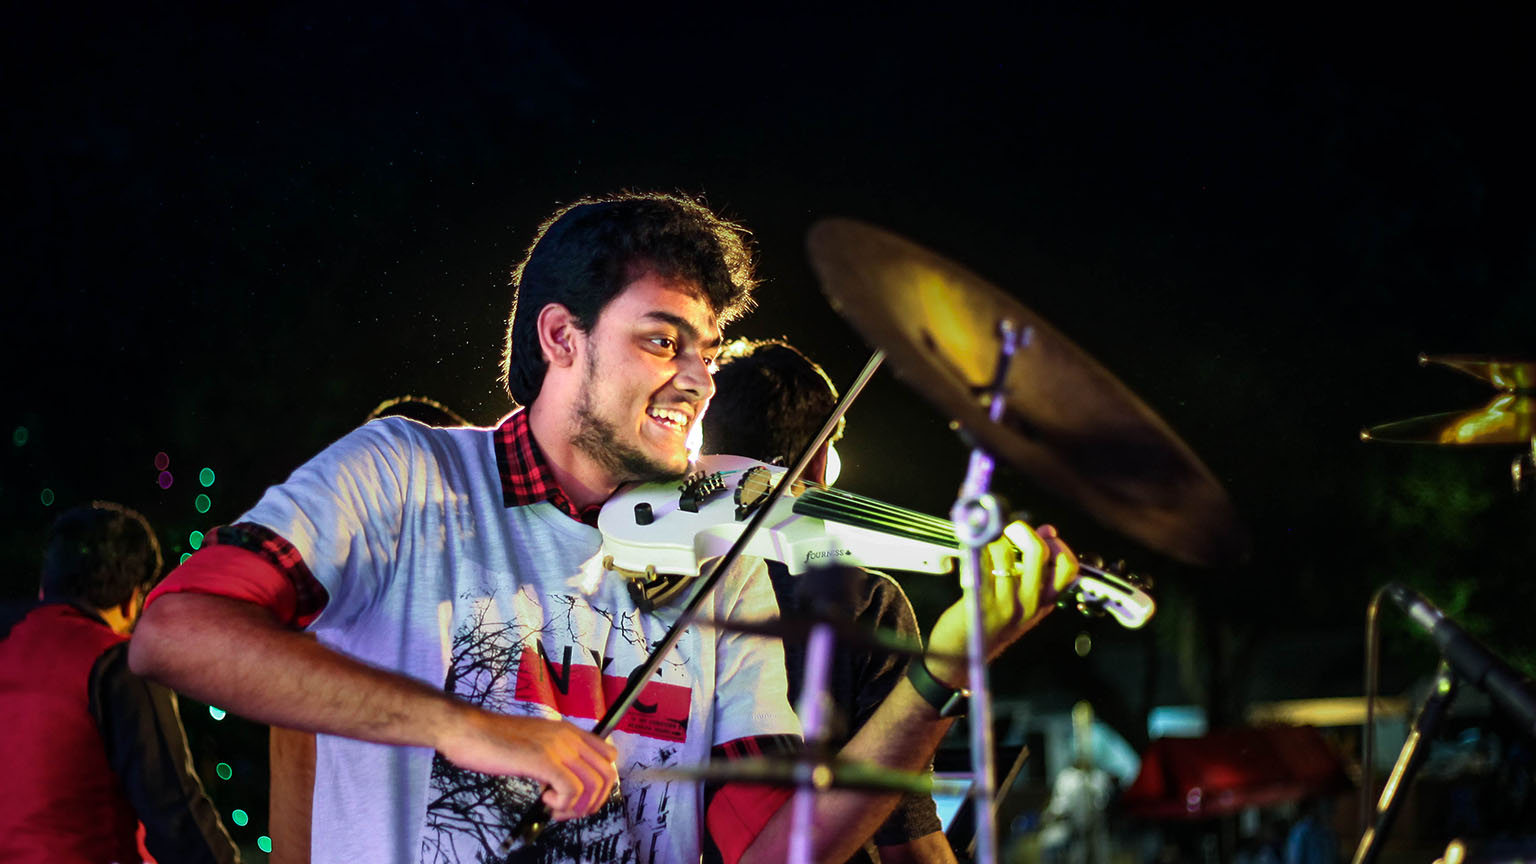 Raghav playing a white violin in a performance on stage.